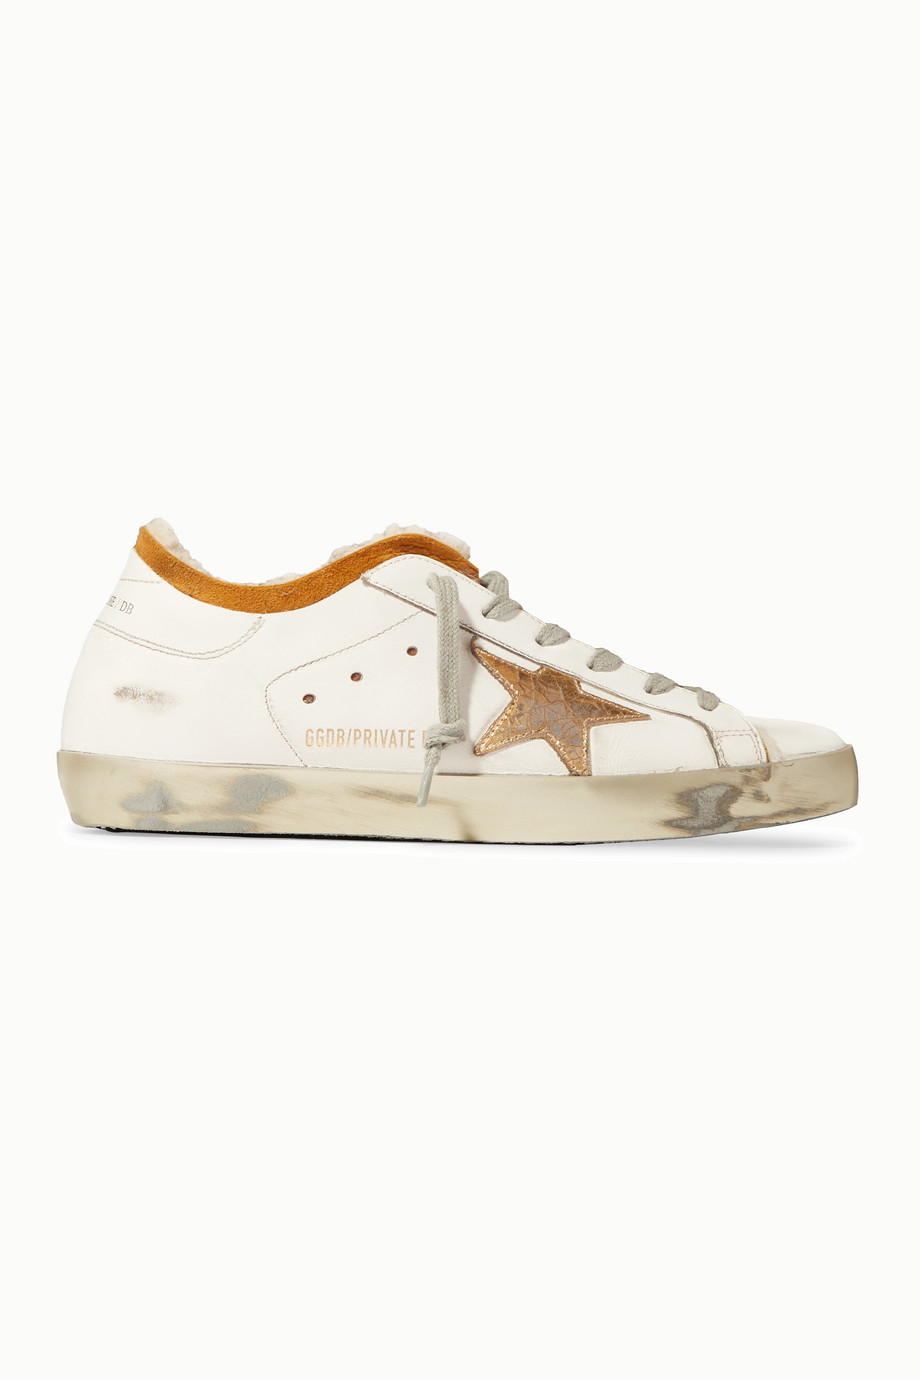 Golden Goose Superstar shearling-lined distressed leather sneakers